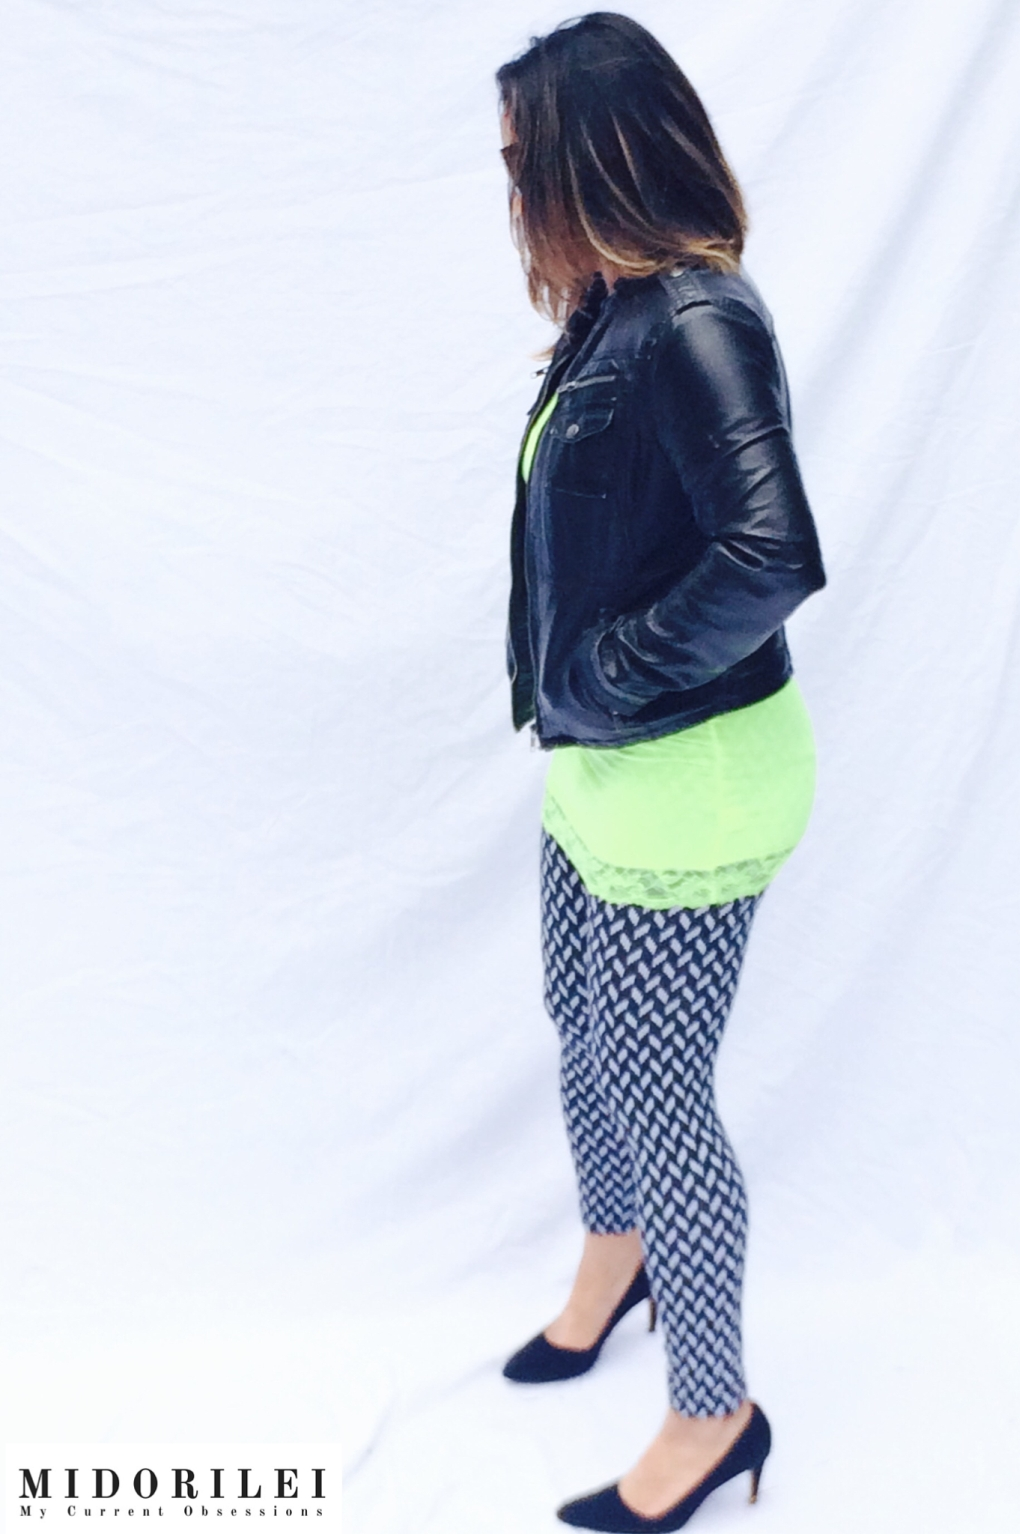 MidoriLei wears classic black pumps, modern graphic black and white leggings, a neon yellow top with lace, and a black motorcycle jacket